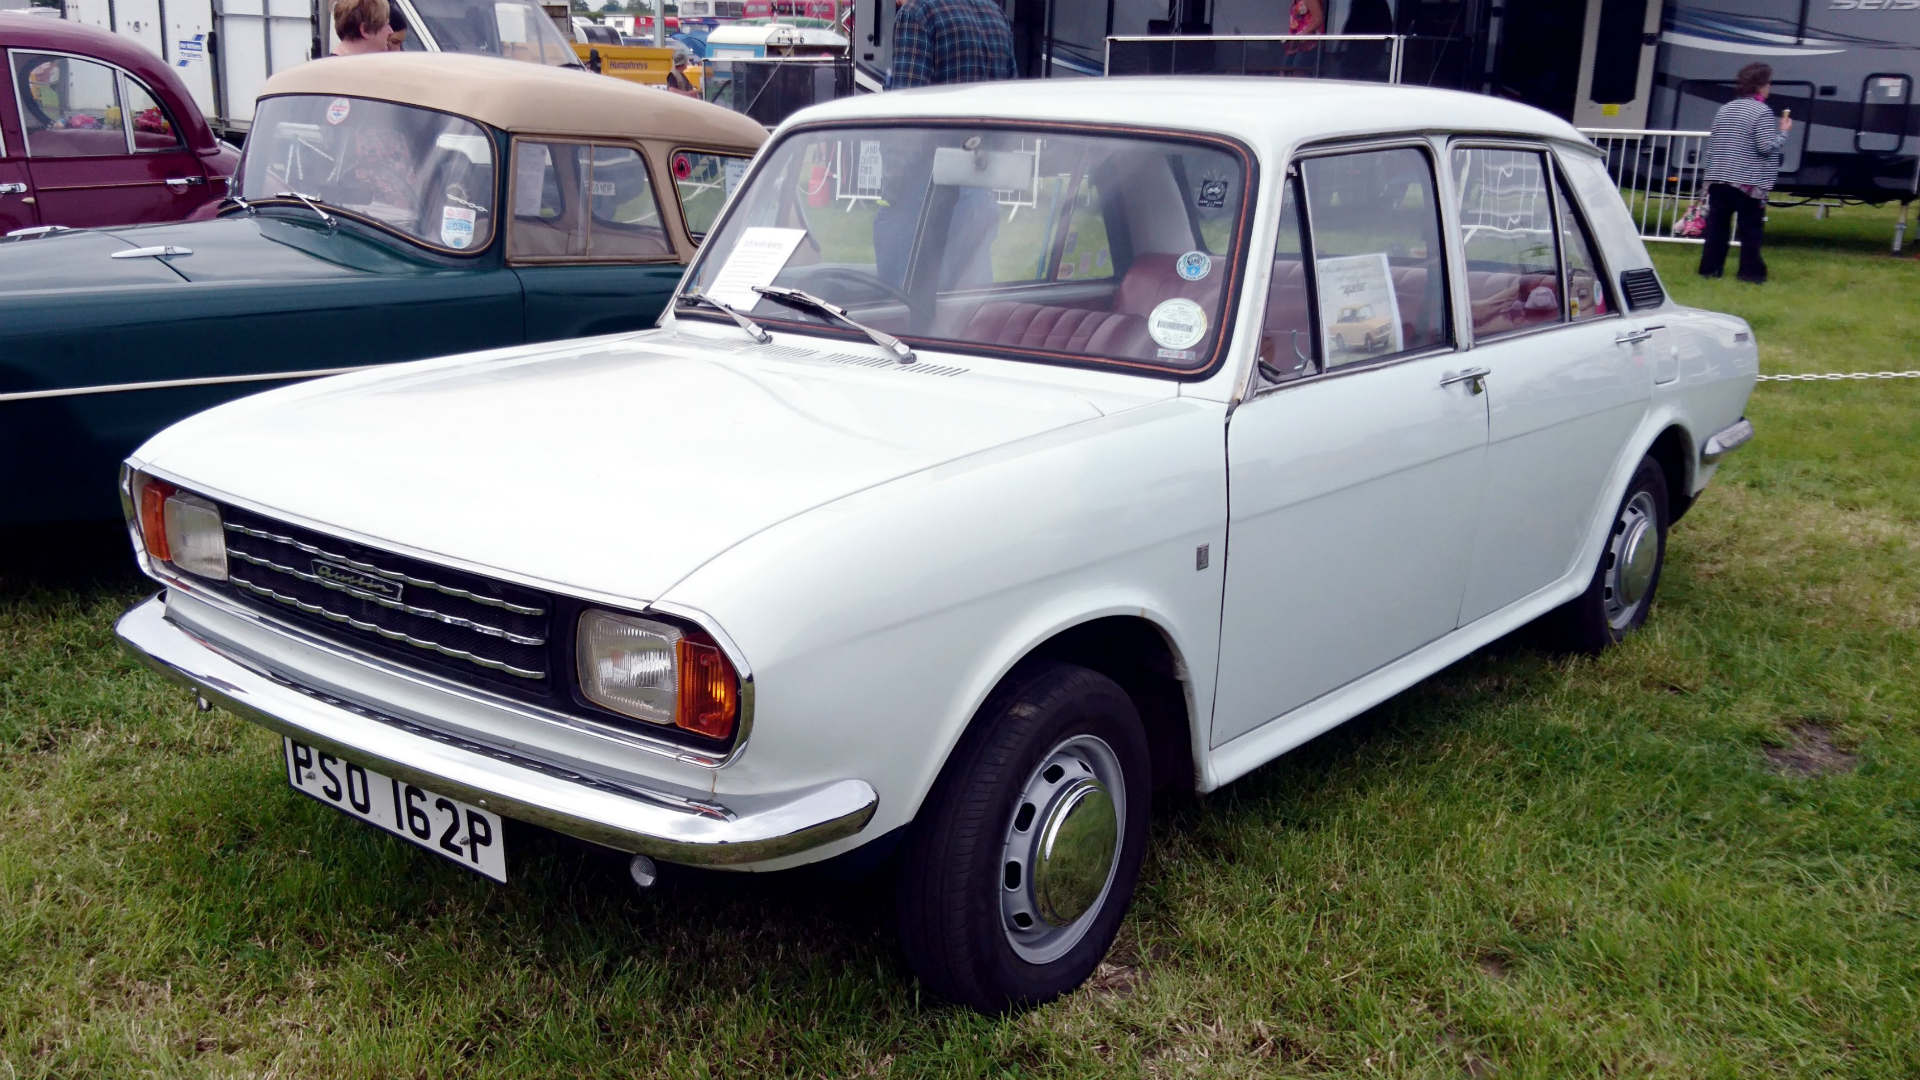 1975 Austin Apache in the UK